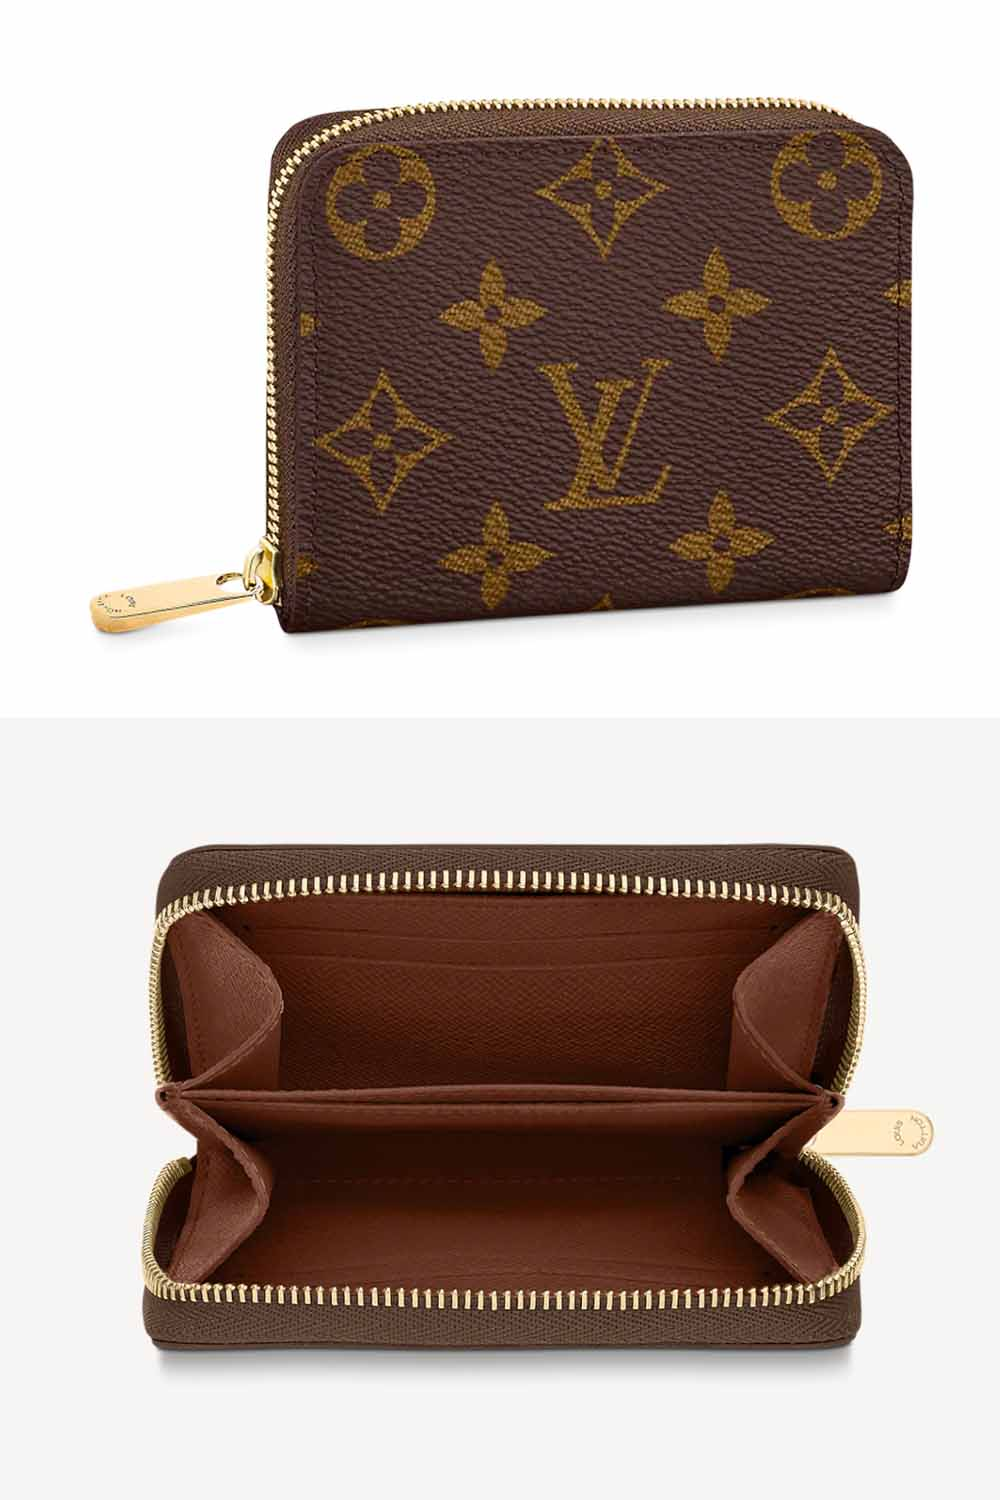 The-best-luxury-gifts-for-her-women-Louis-Vuitton-zippy-coin-purse-monogram